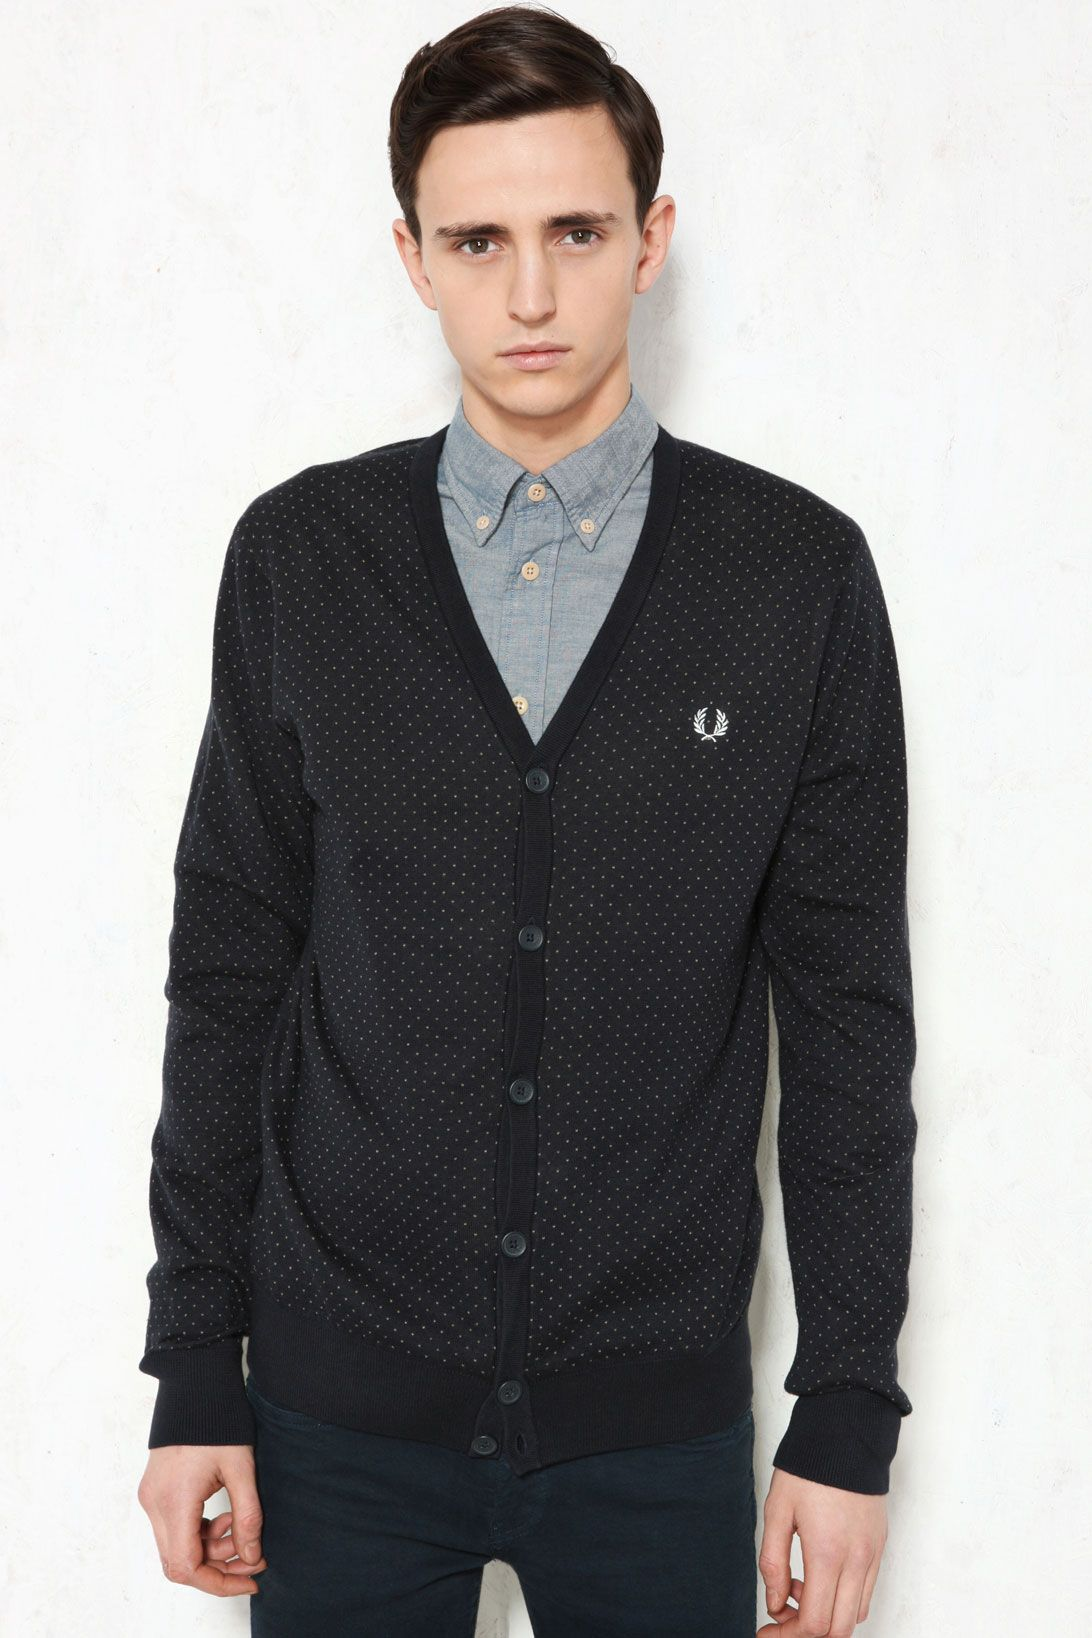 Fred Perry Micro V Dot Knitted Cardigan in navy $136